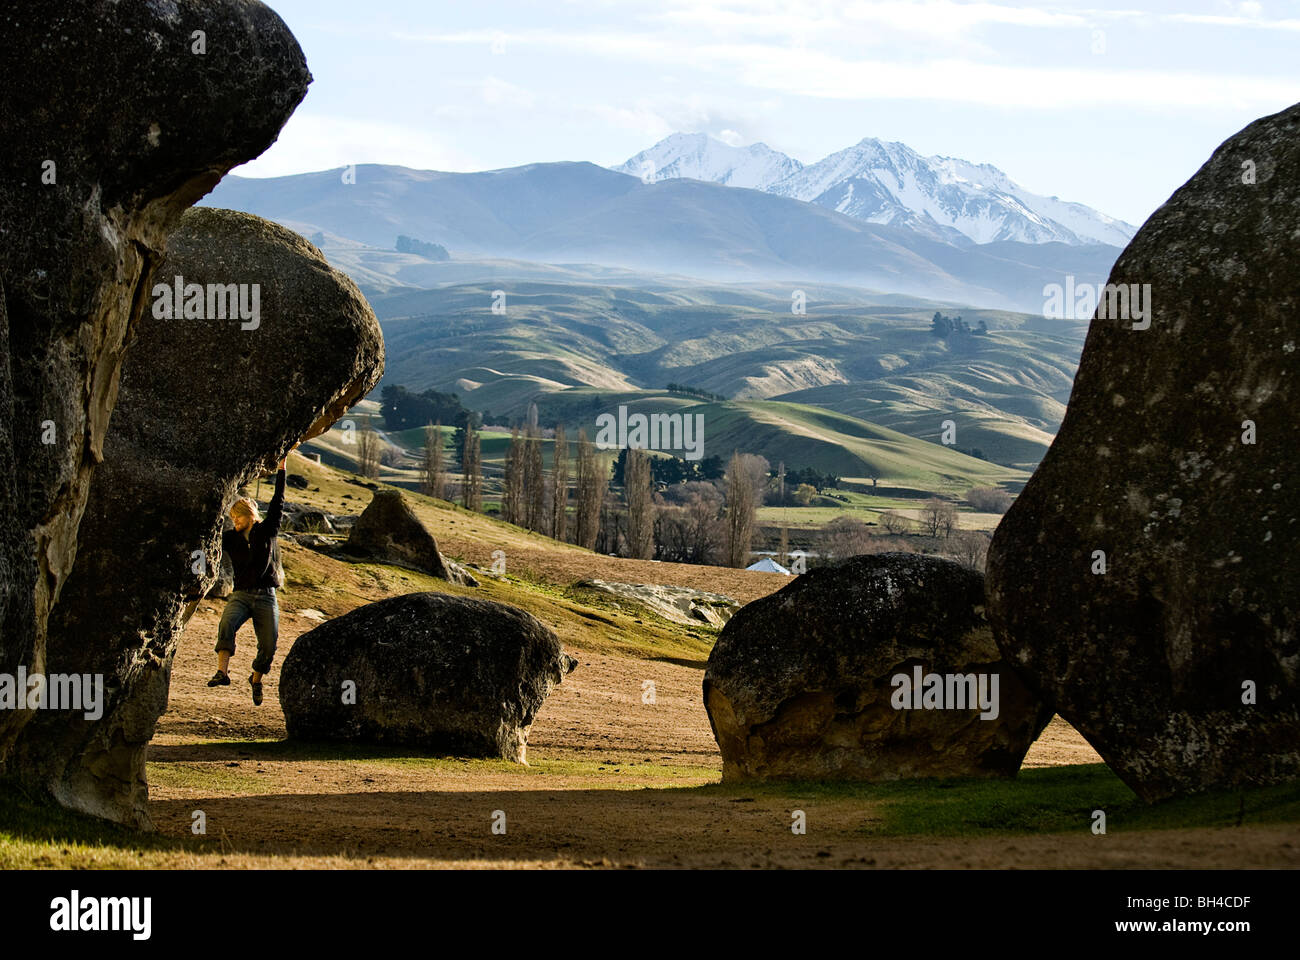 Hanging on with only his hands, a young man searches for a foot hold on a boulder at Elephant Rocks, New Zealand. - Stock Image